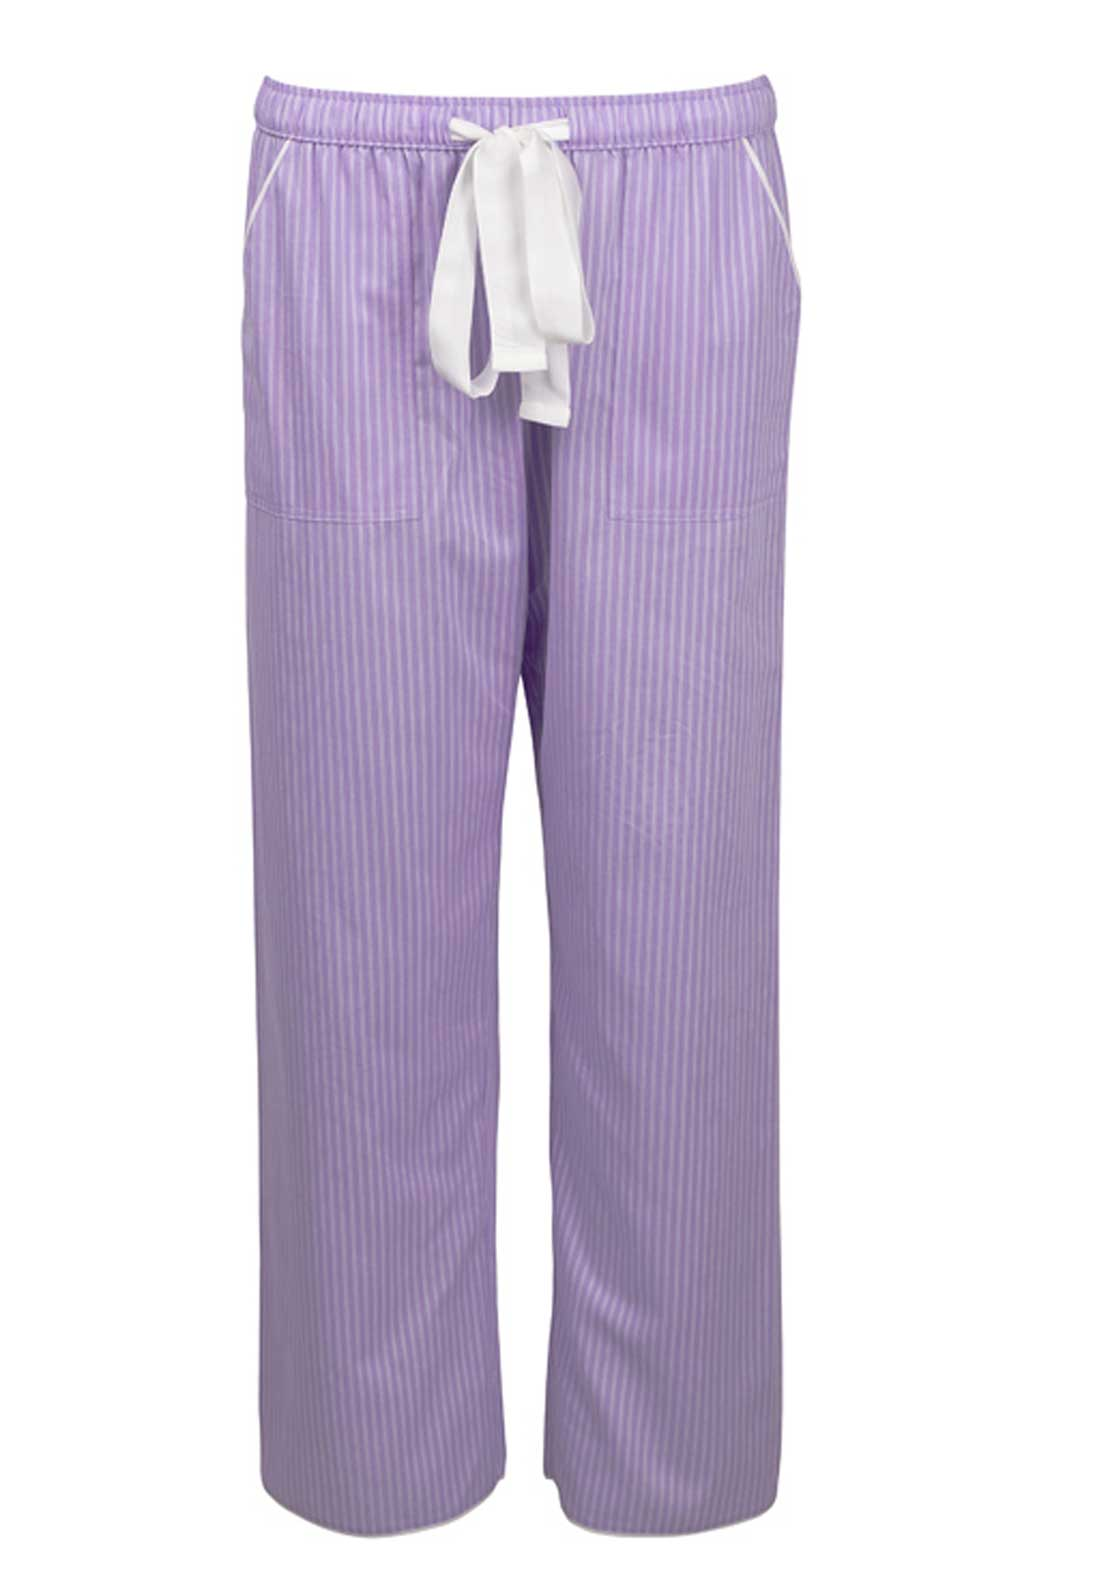 Cyberjammies Patchwork Aviary Striped Pyjama Bottoms, Lilac